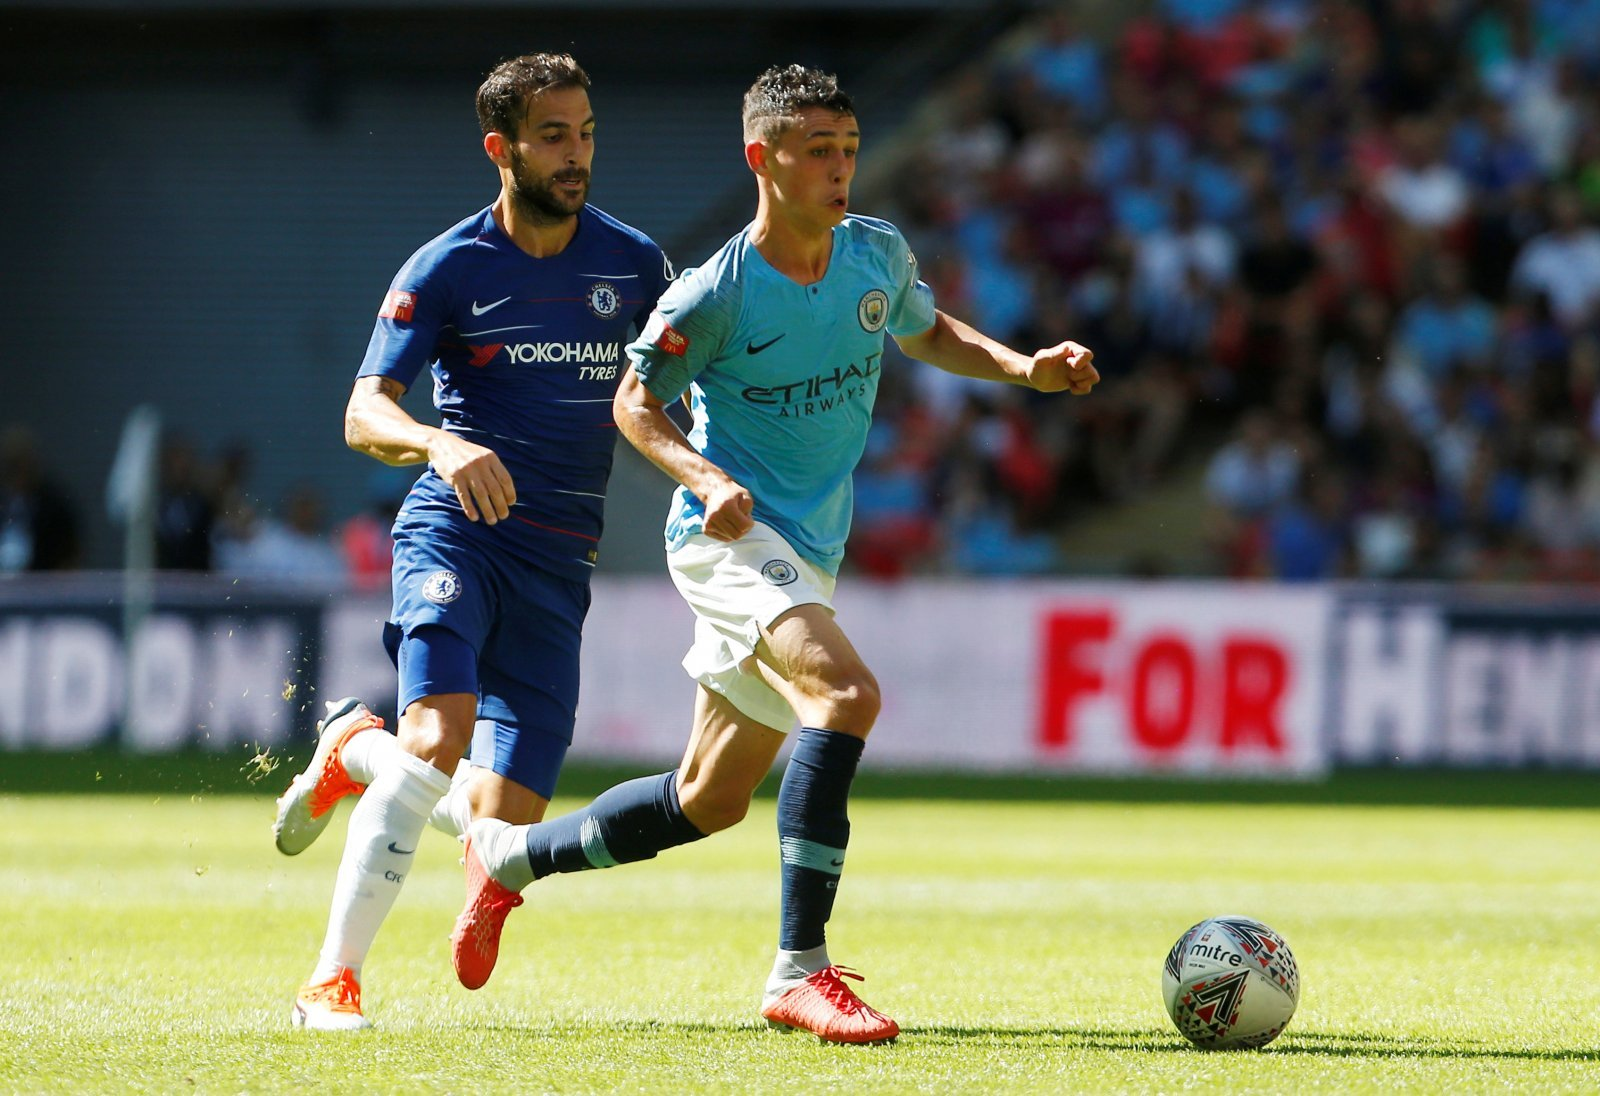 Pep Guardiola believes Phil Foden is ready for England call-up